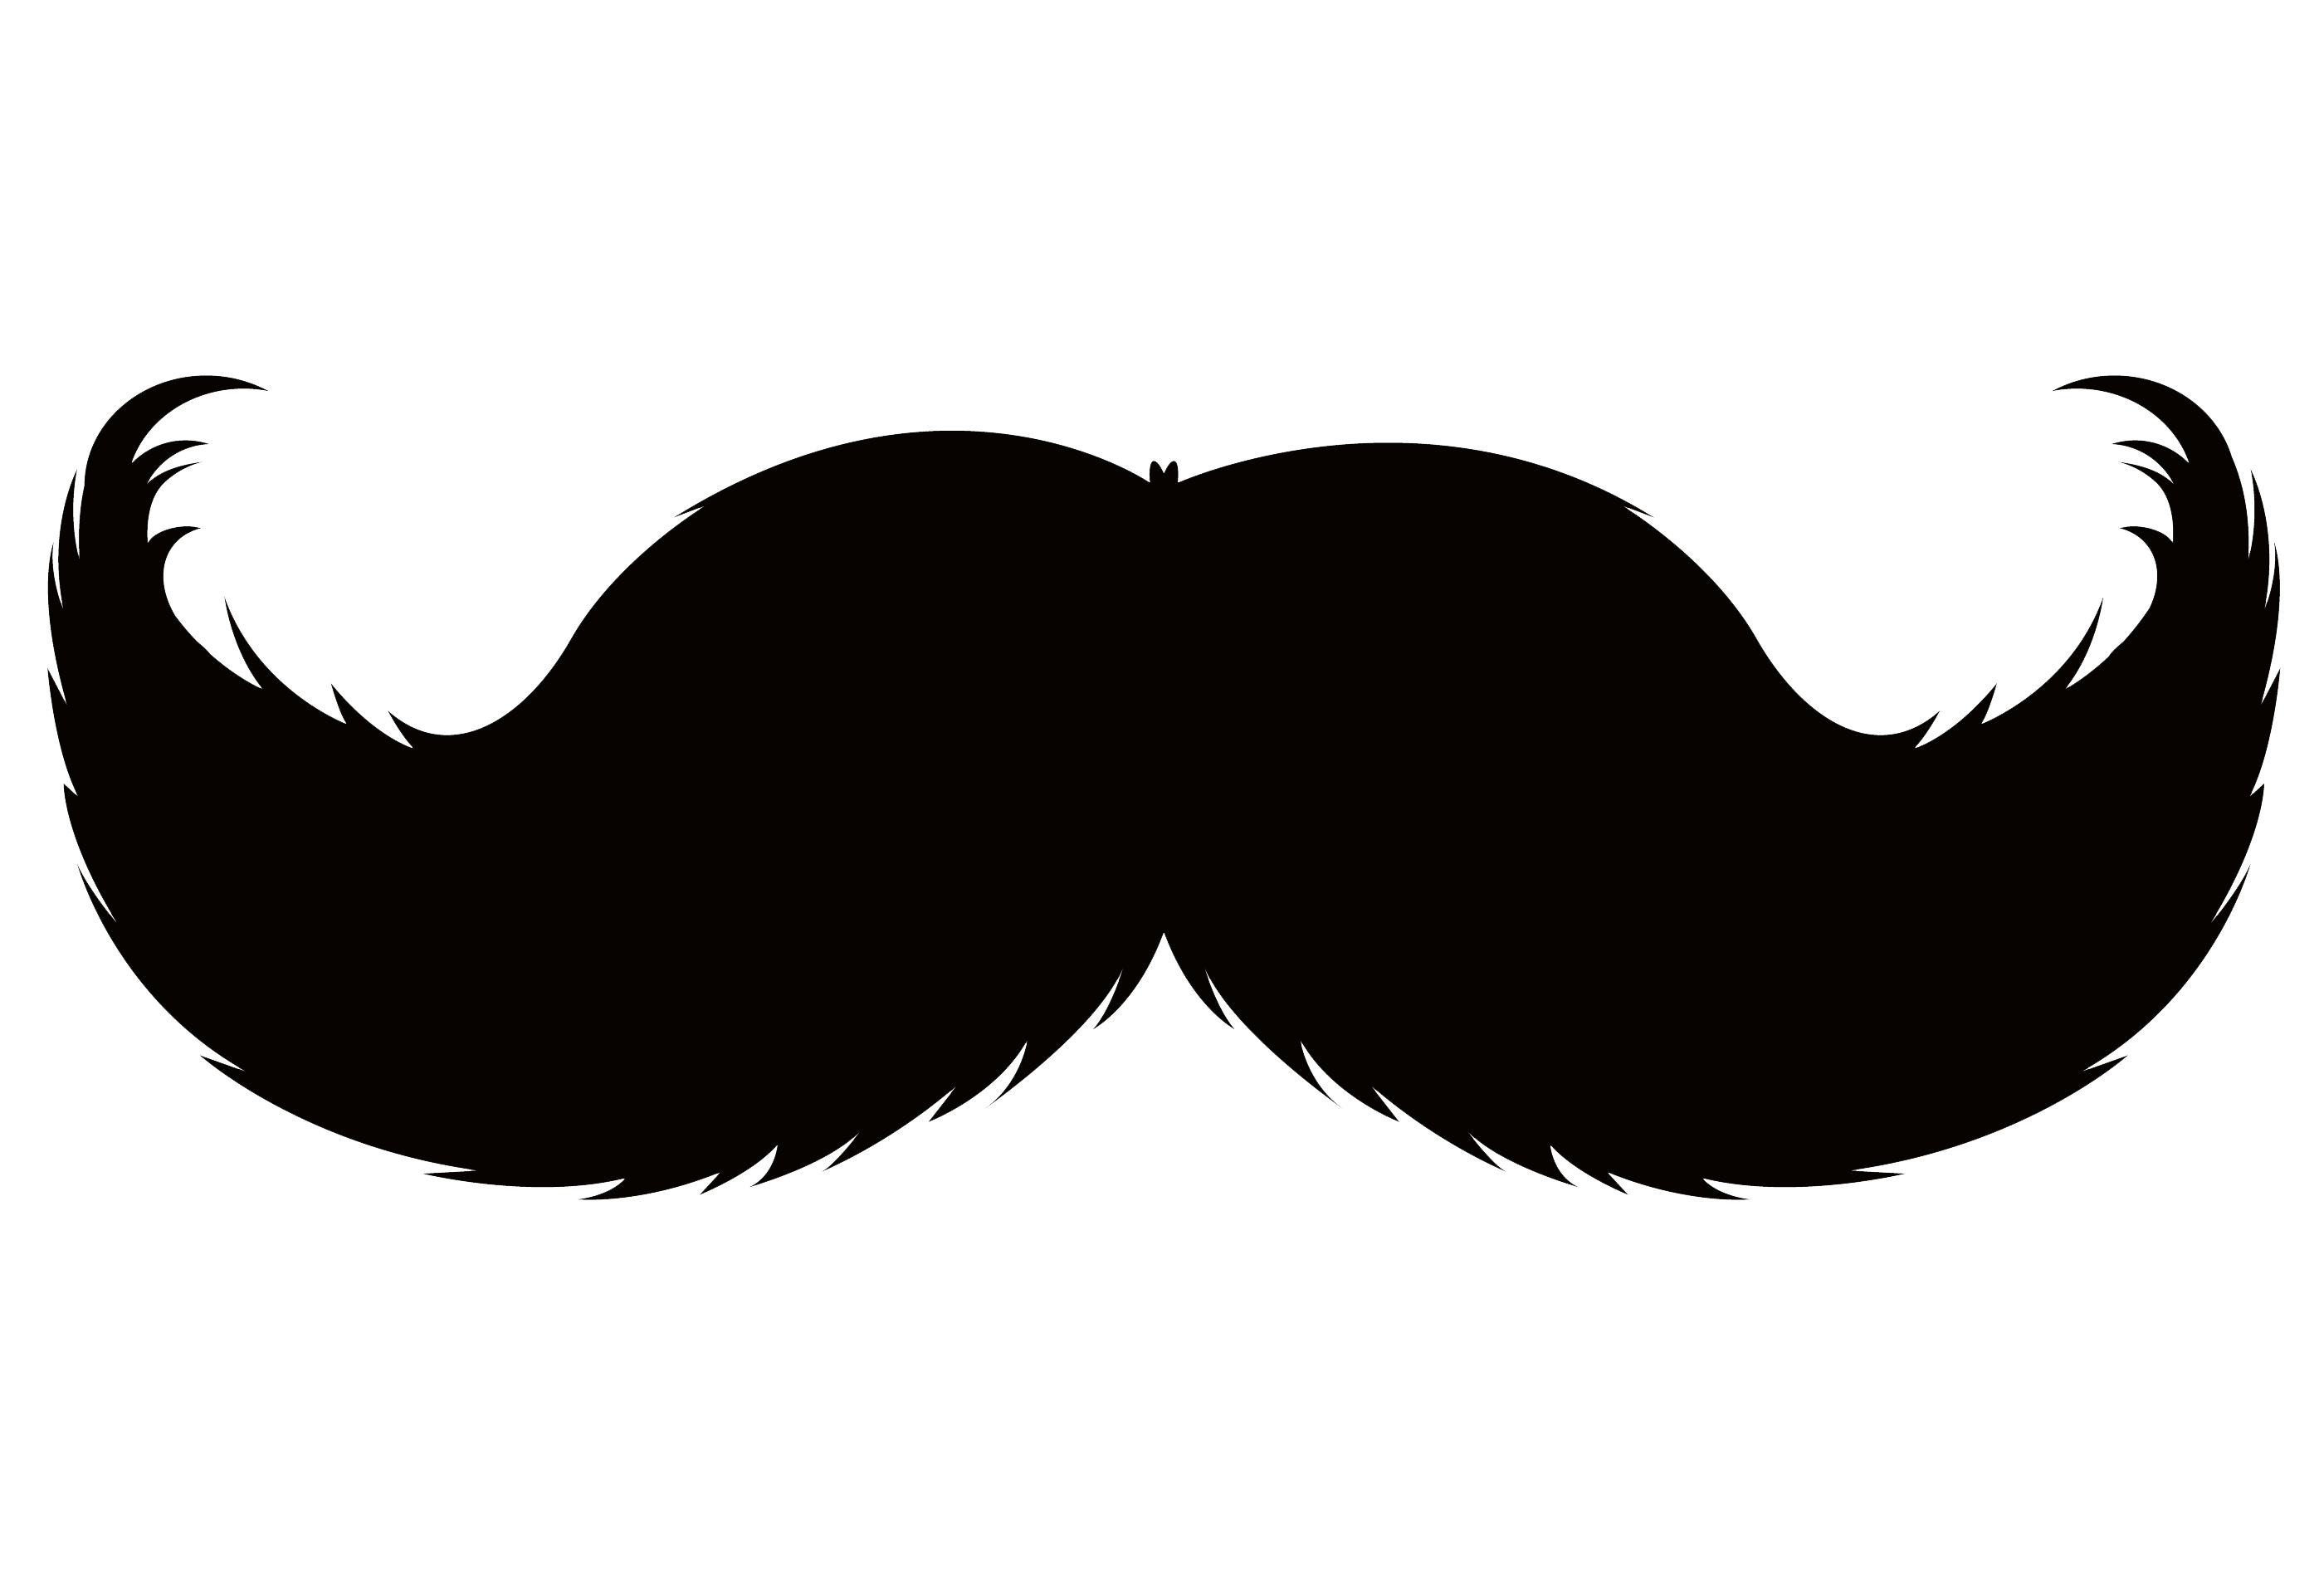 Clipart mustache hand drawn.  collection of black